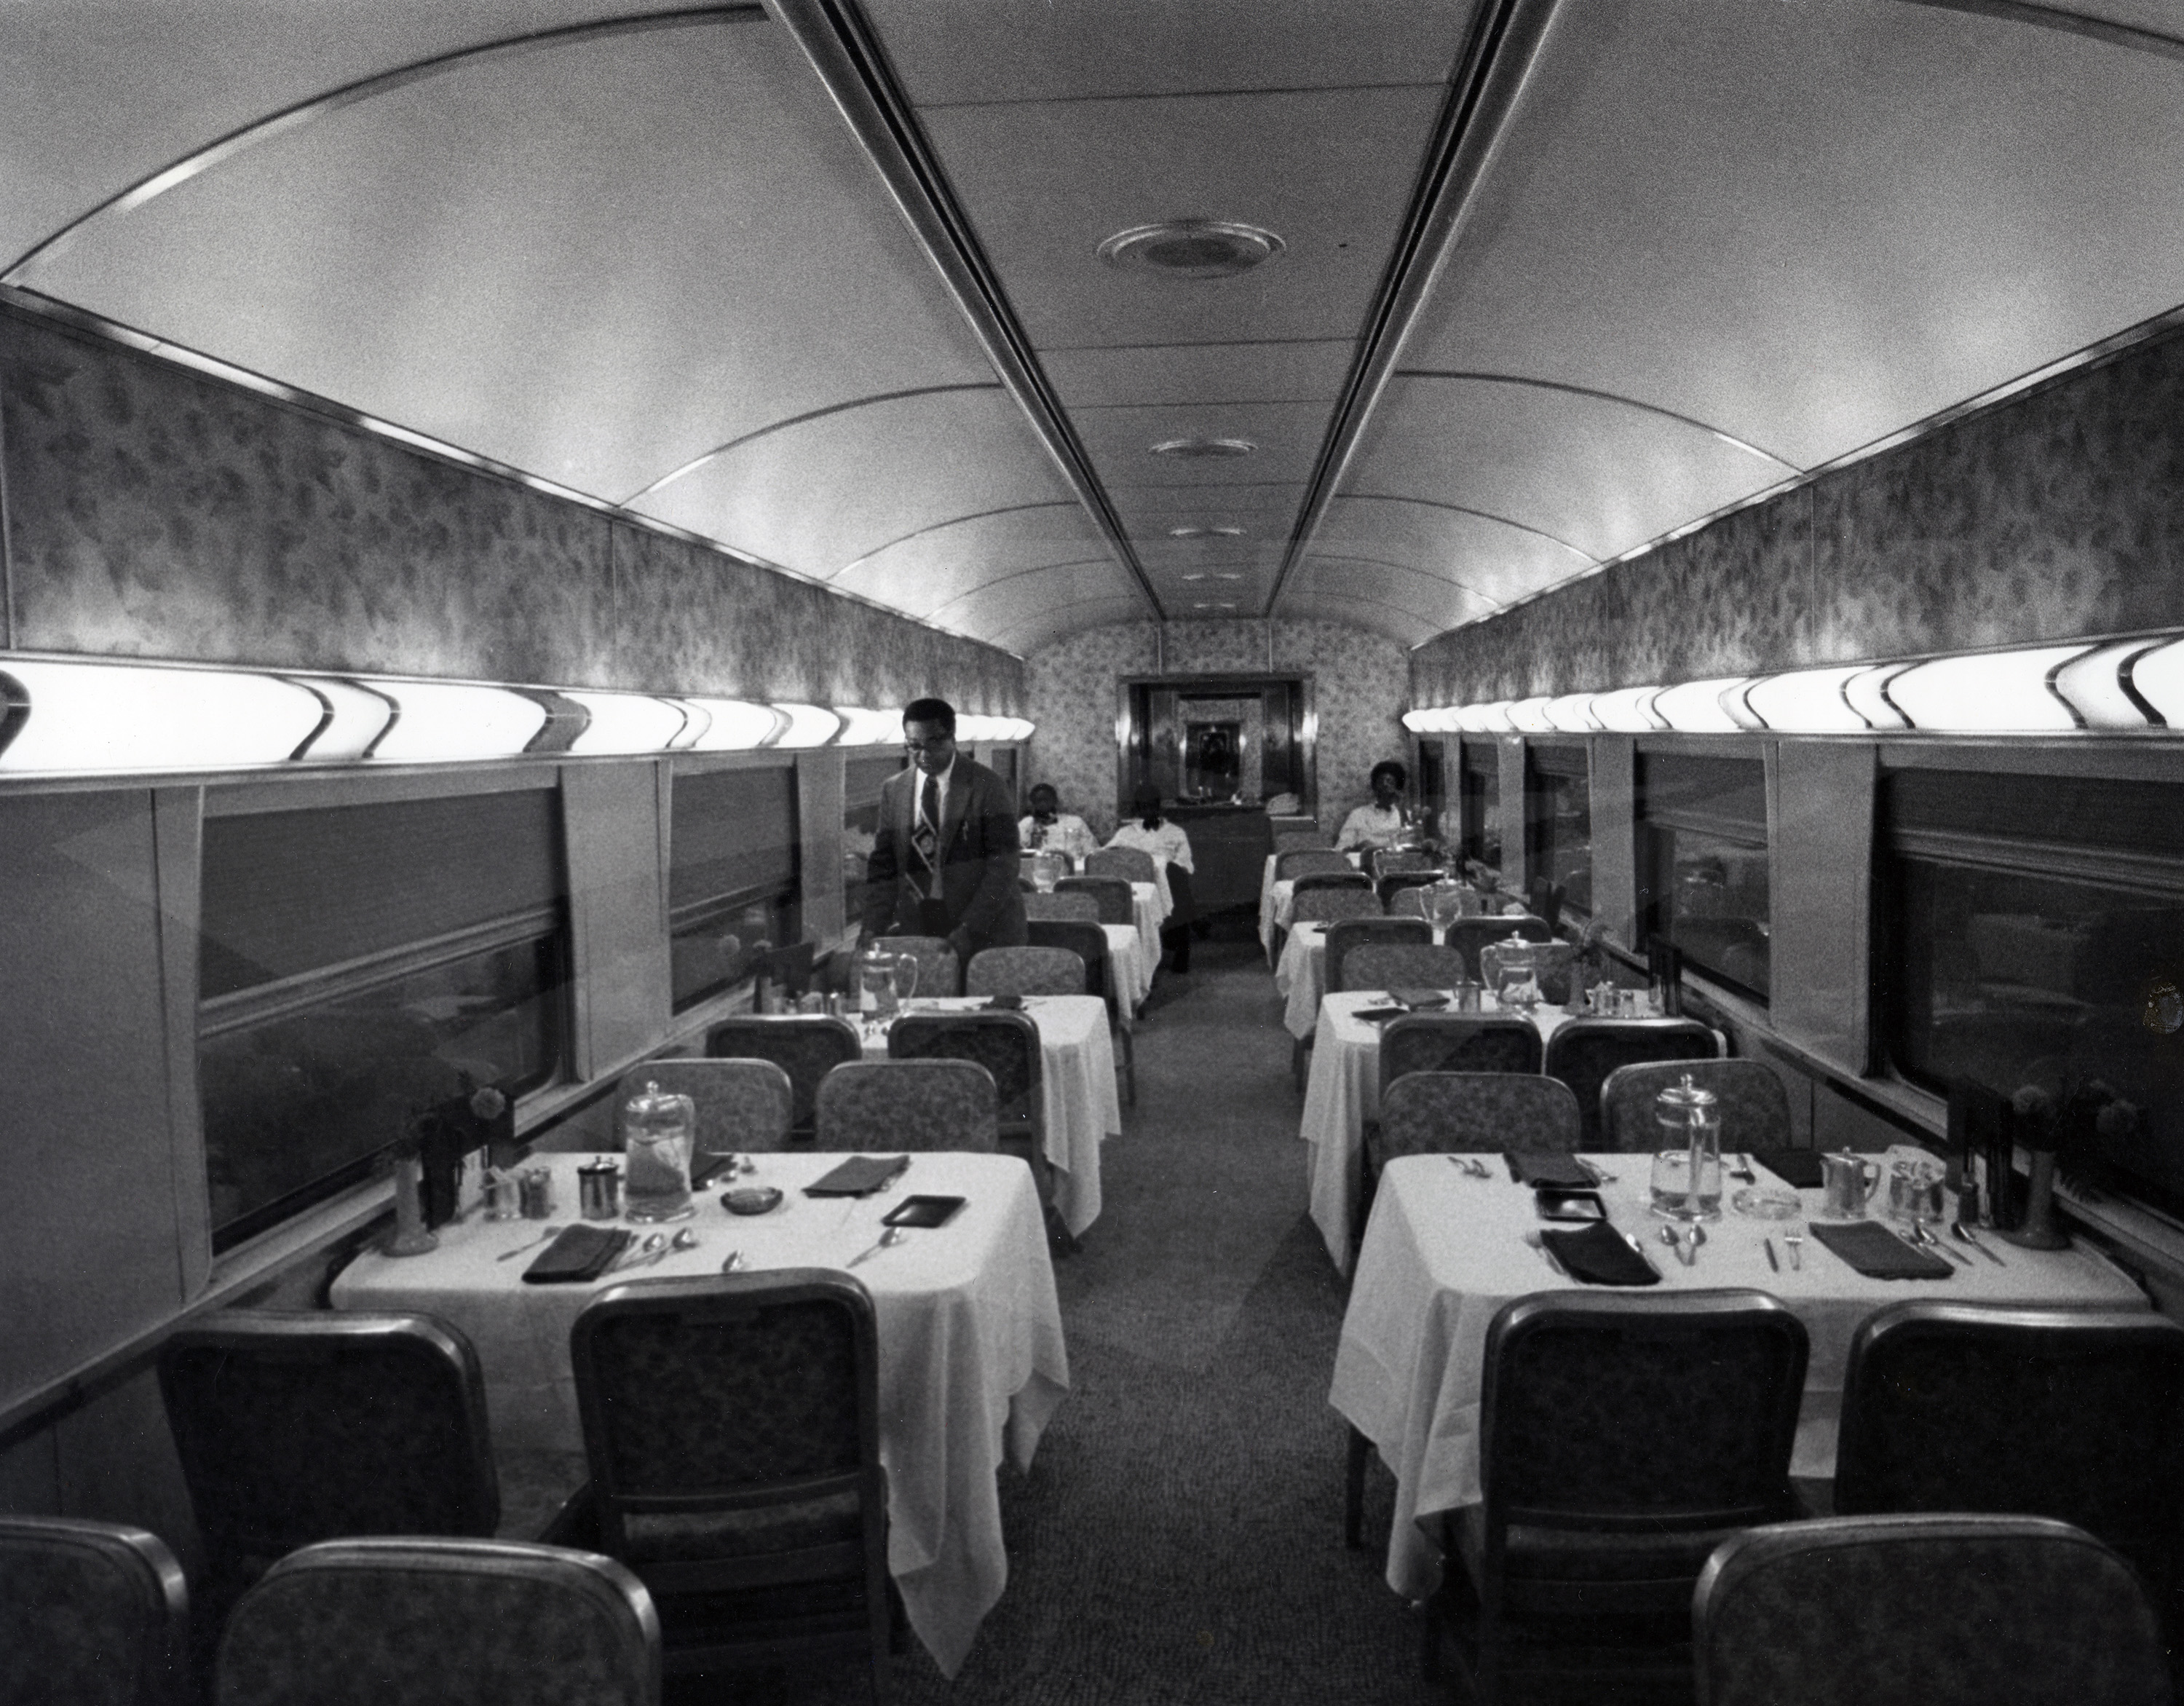 dining car 1970s amtrak history of america s railroad. Black Bedroom Furniture Sets. Home Design Ideas